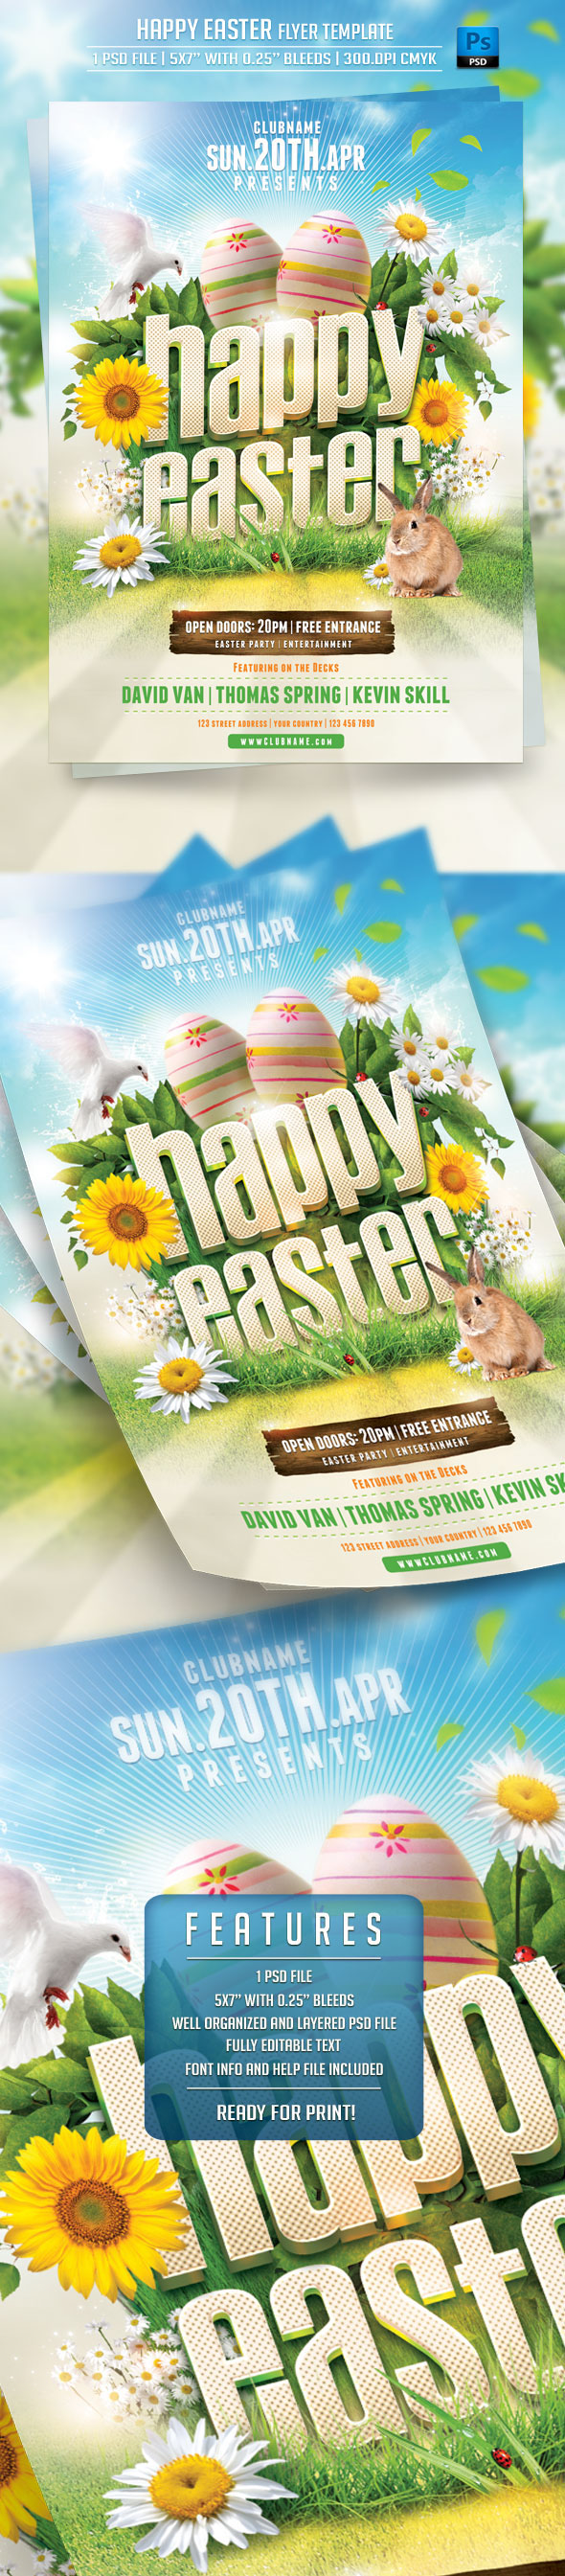 Happy Easter Flyer Template on Behance